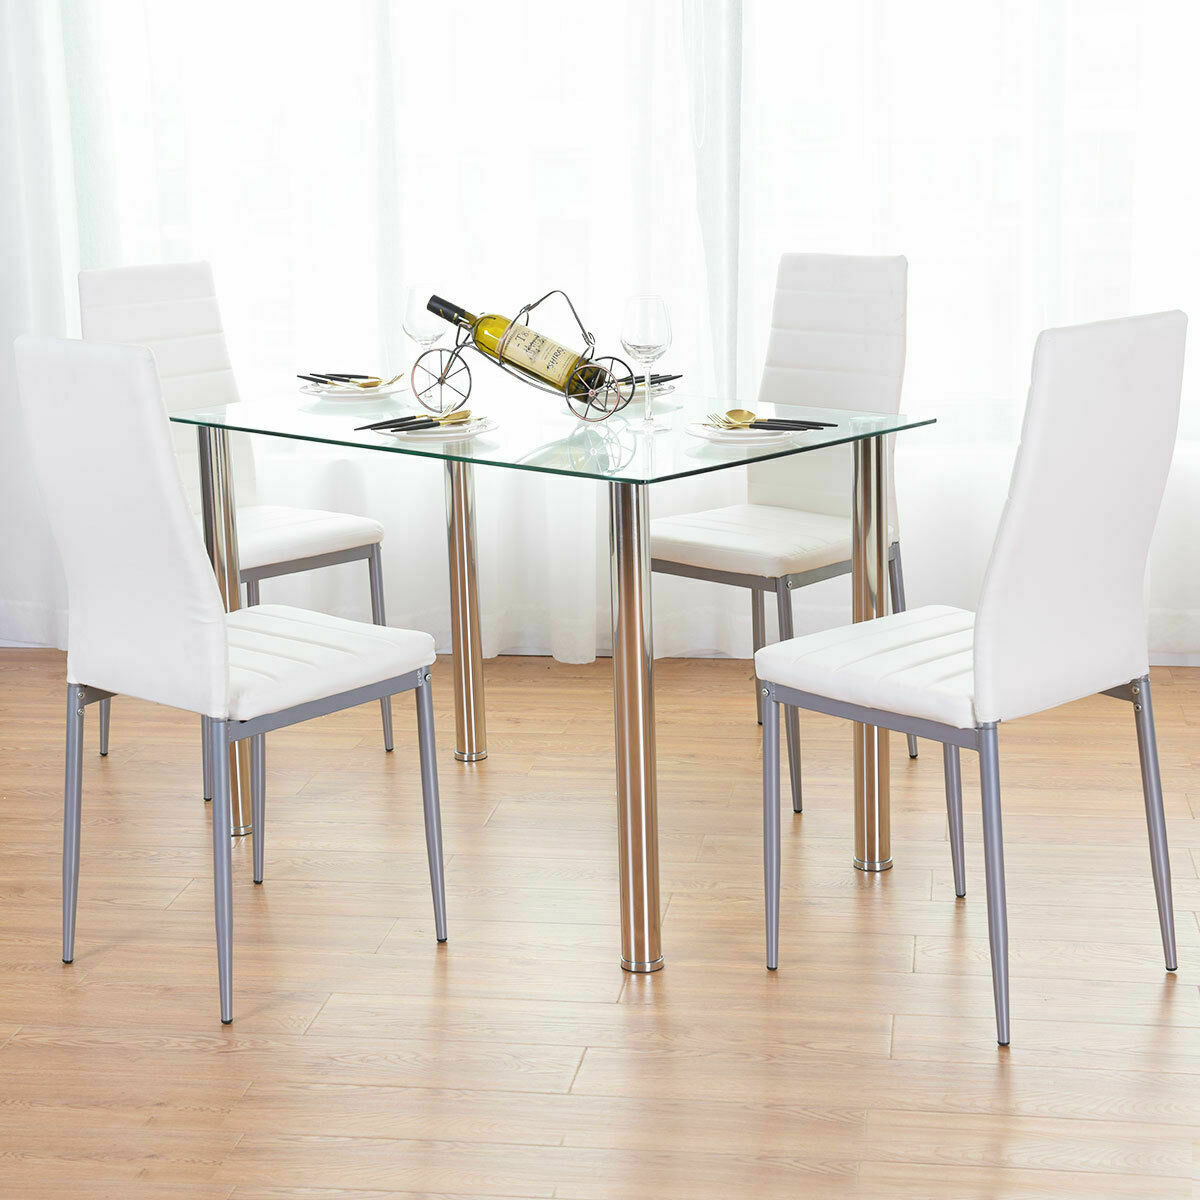 Superb Details About 5 Piece Dining Table Set White Glass And 4 Chairs Faux Leather Kitchen Furniture Pdpeps Interior Chair Design Pdpepsorg